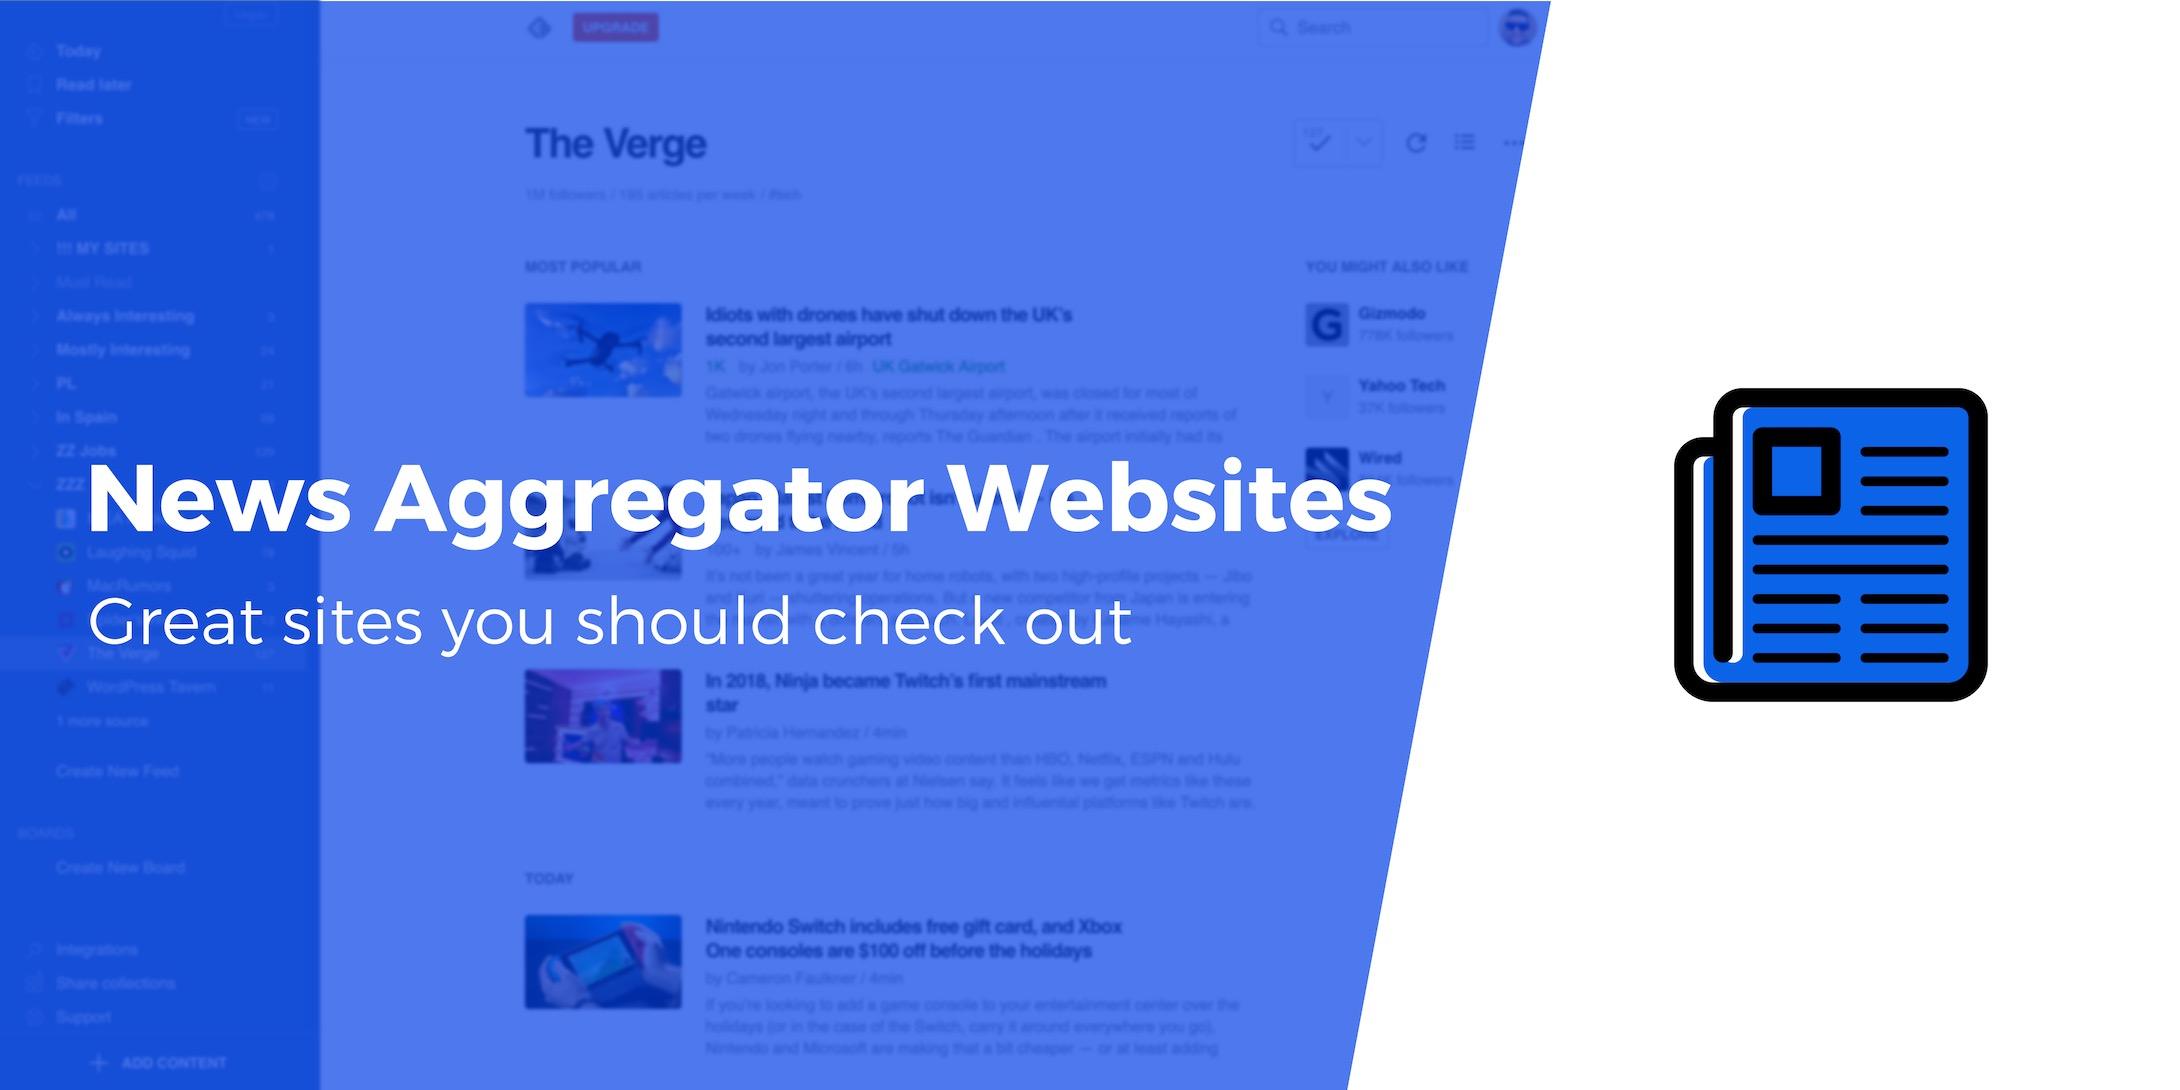 7 Great News Aggregator Websites You Should Check Out (Plus How to Build Your Own)